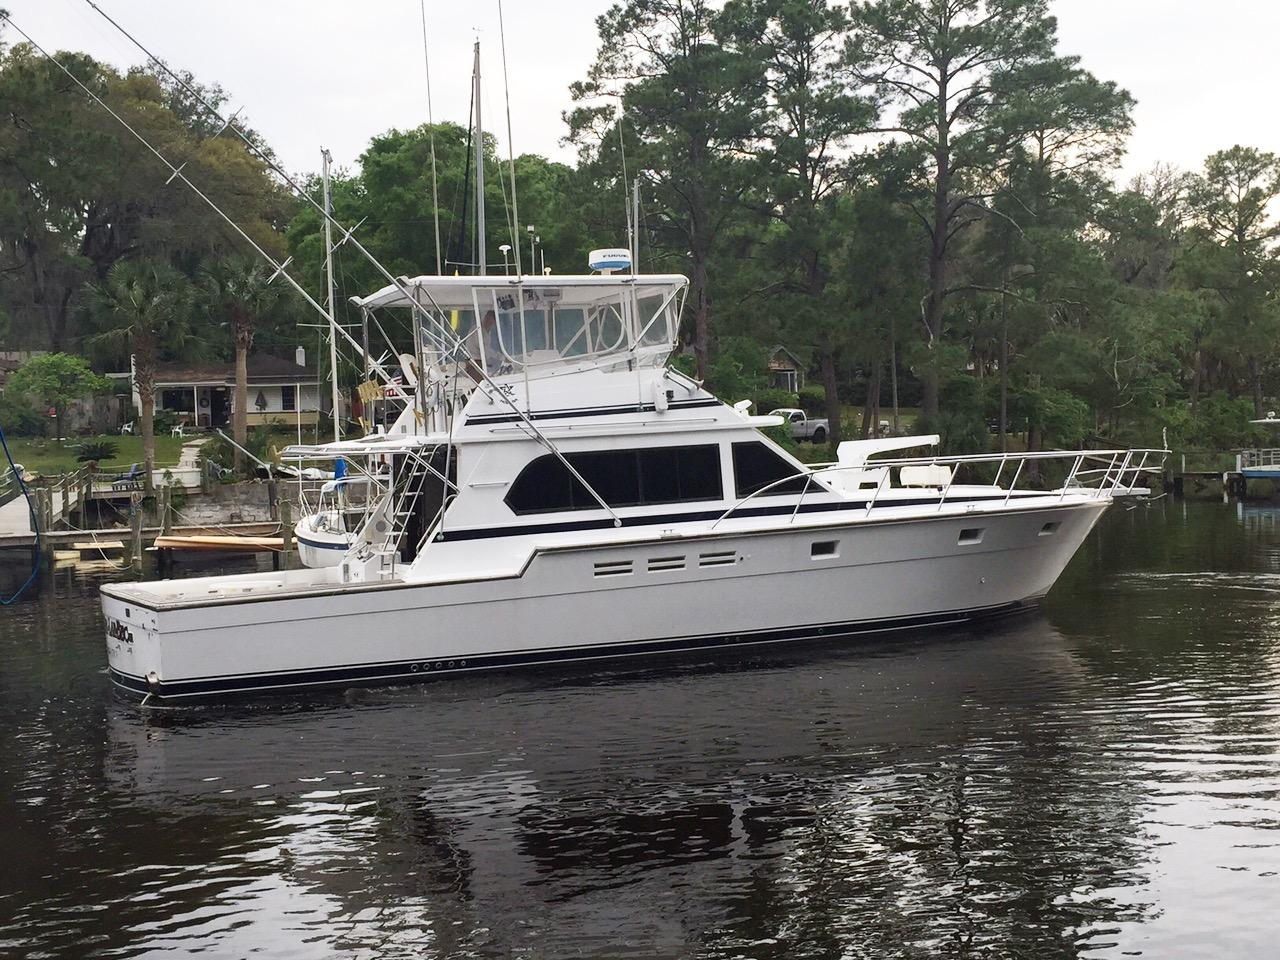 1989 used hi star sport fishermansport fisherman sports for Sport fishing boats for sale by owner